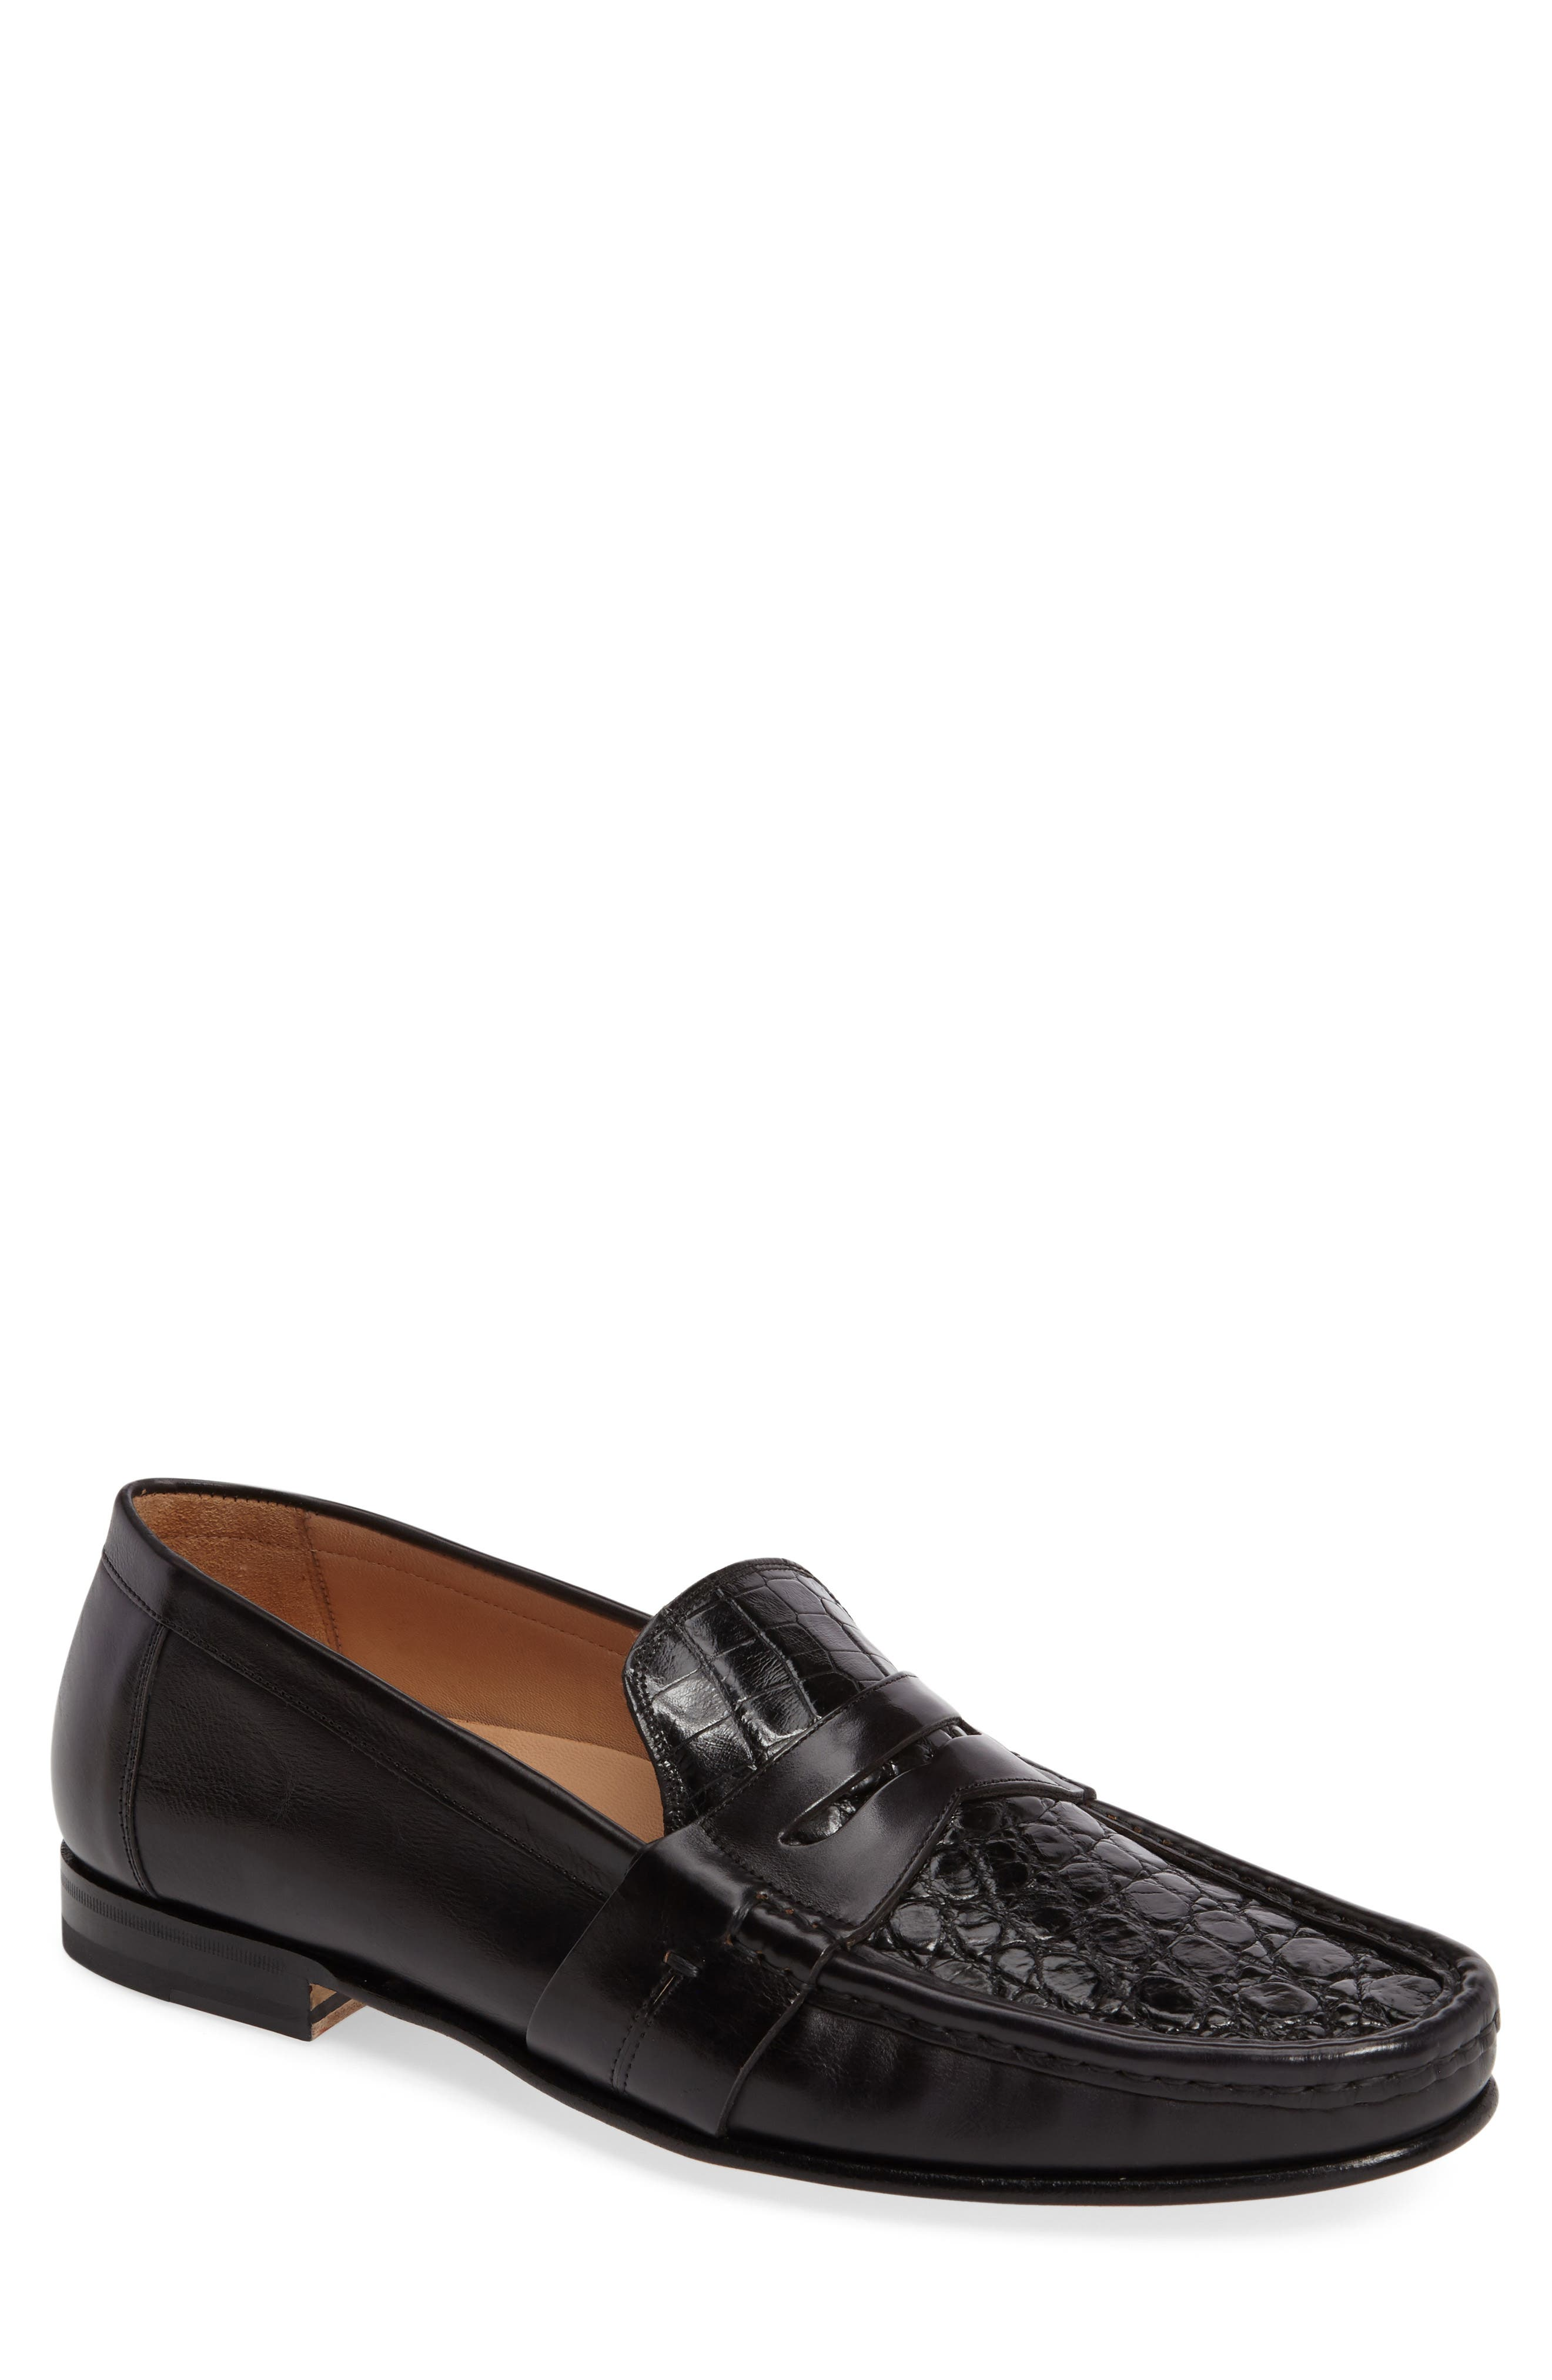 Marconi Penny Loafer,                             Main thumbnail 1, color,